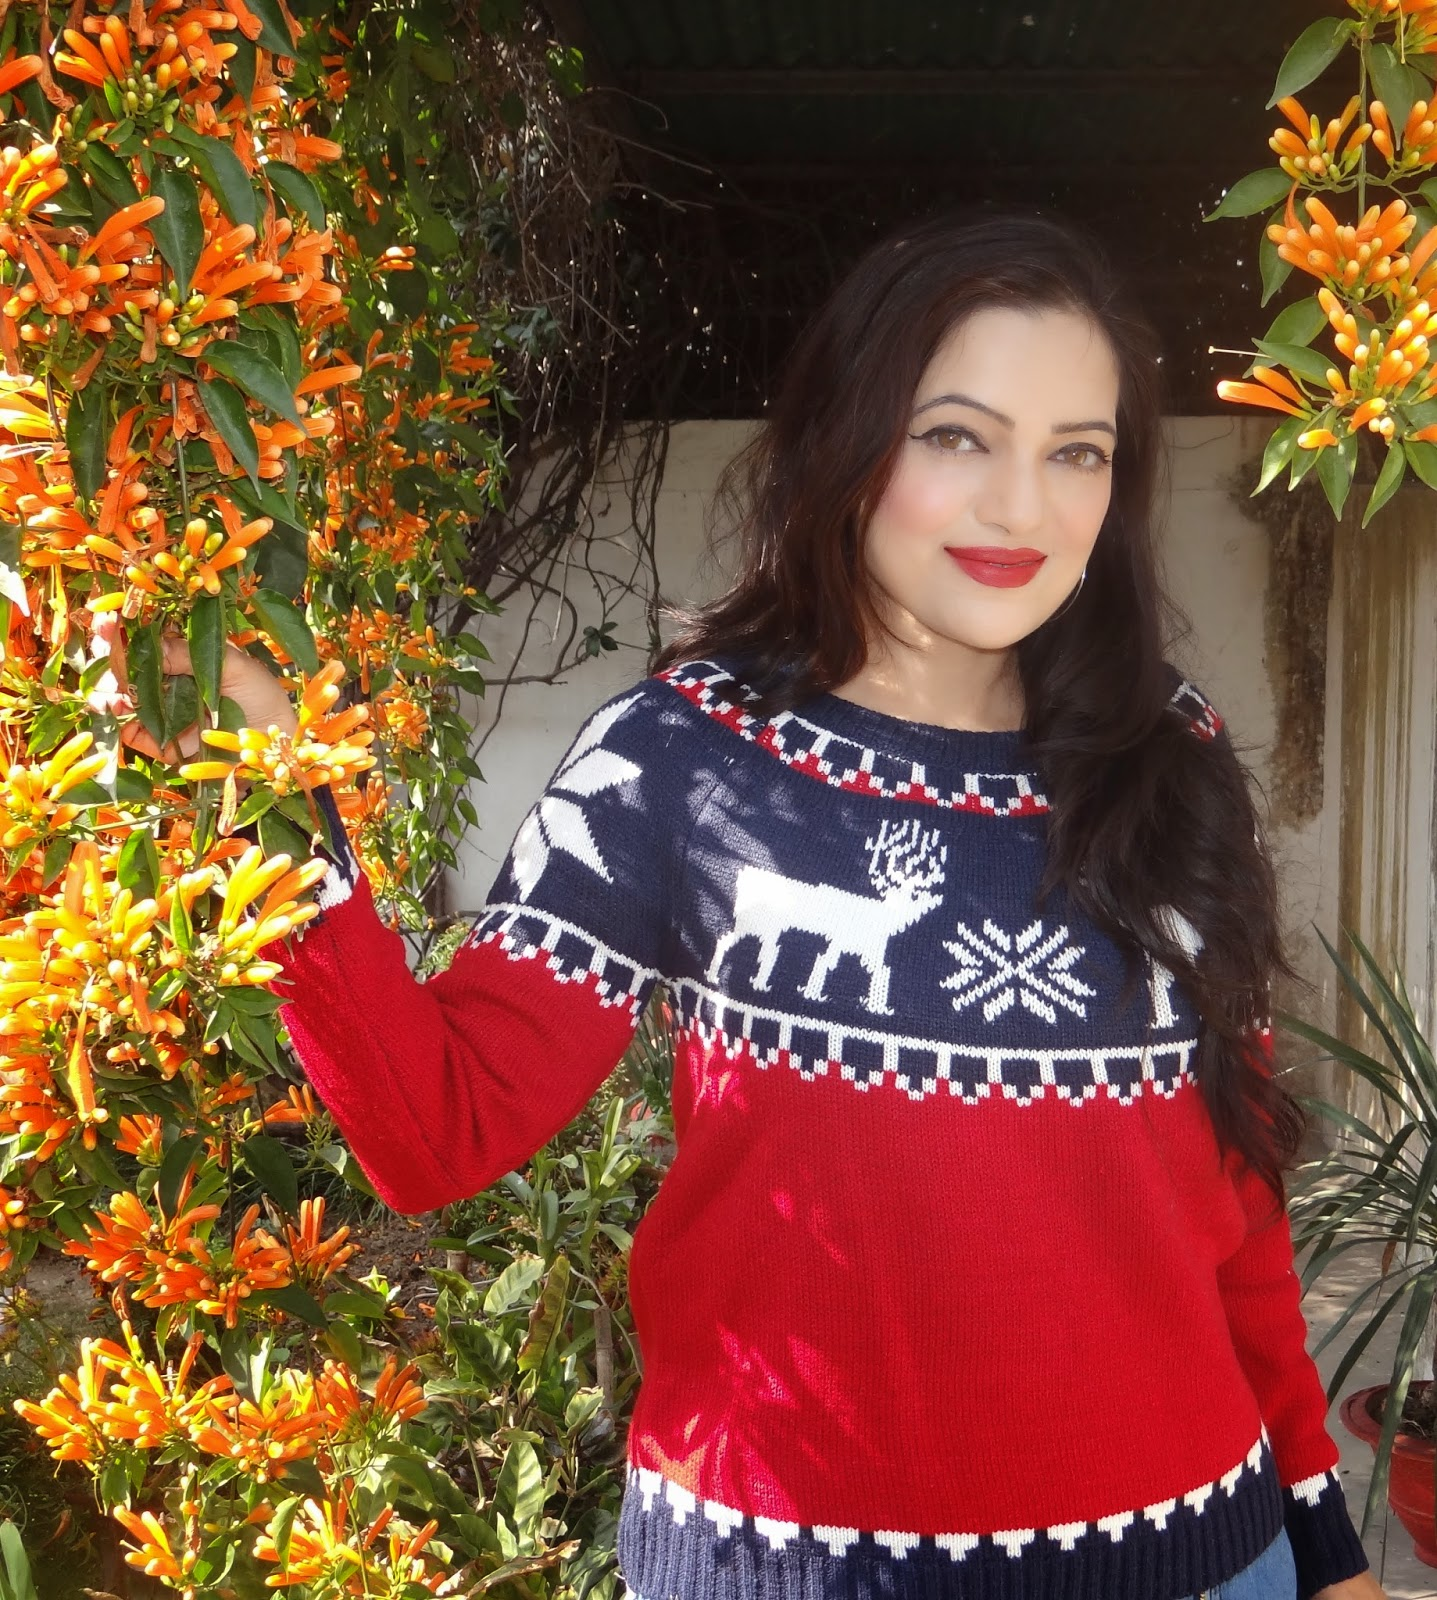 Christmas sweater from OASAP, ootd